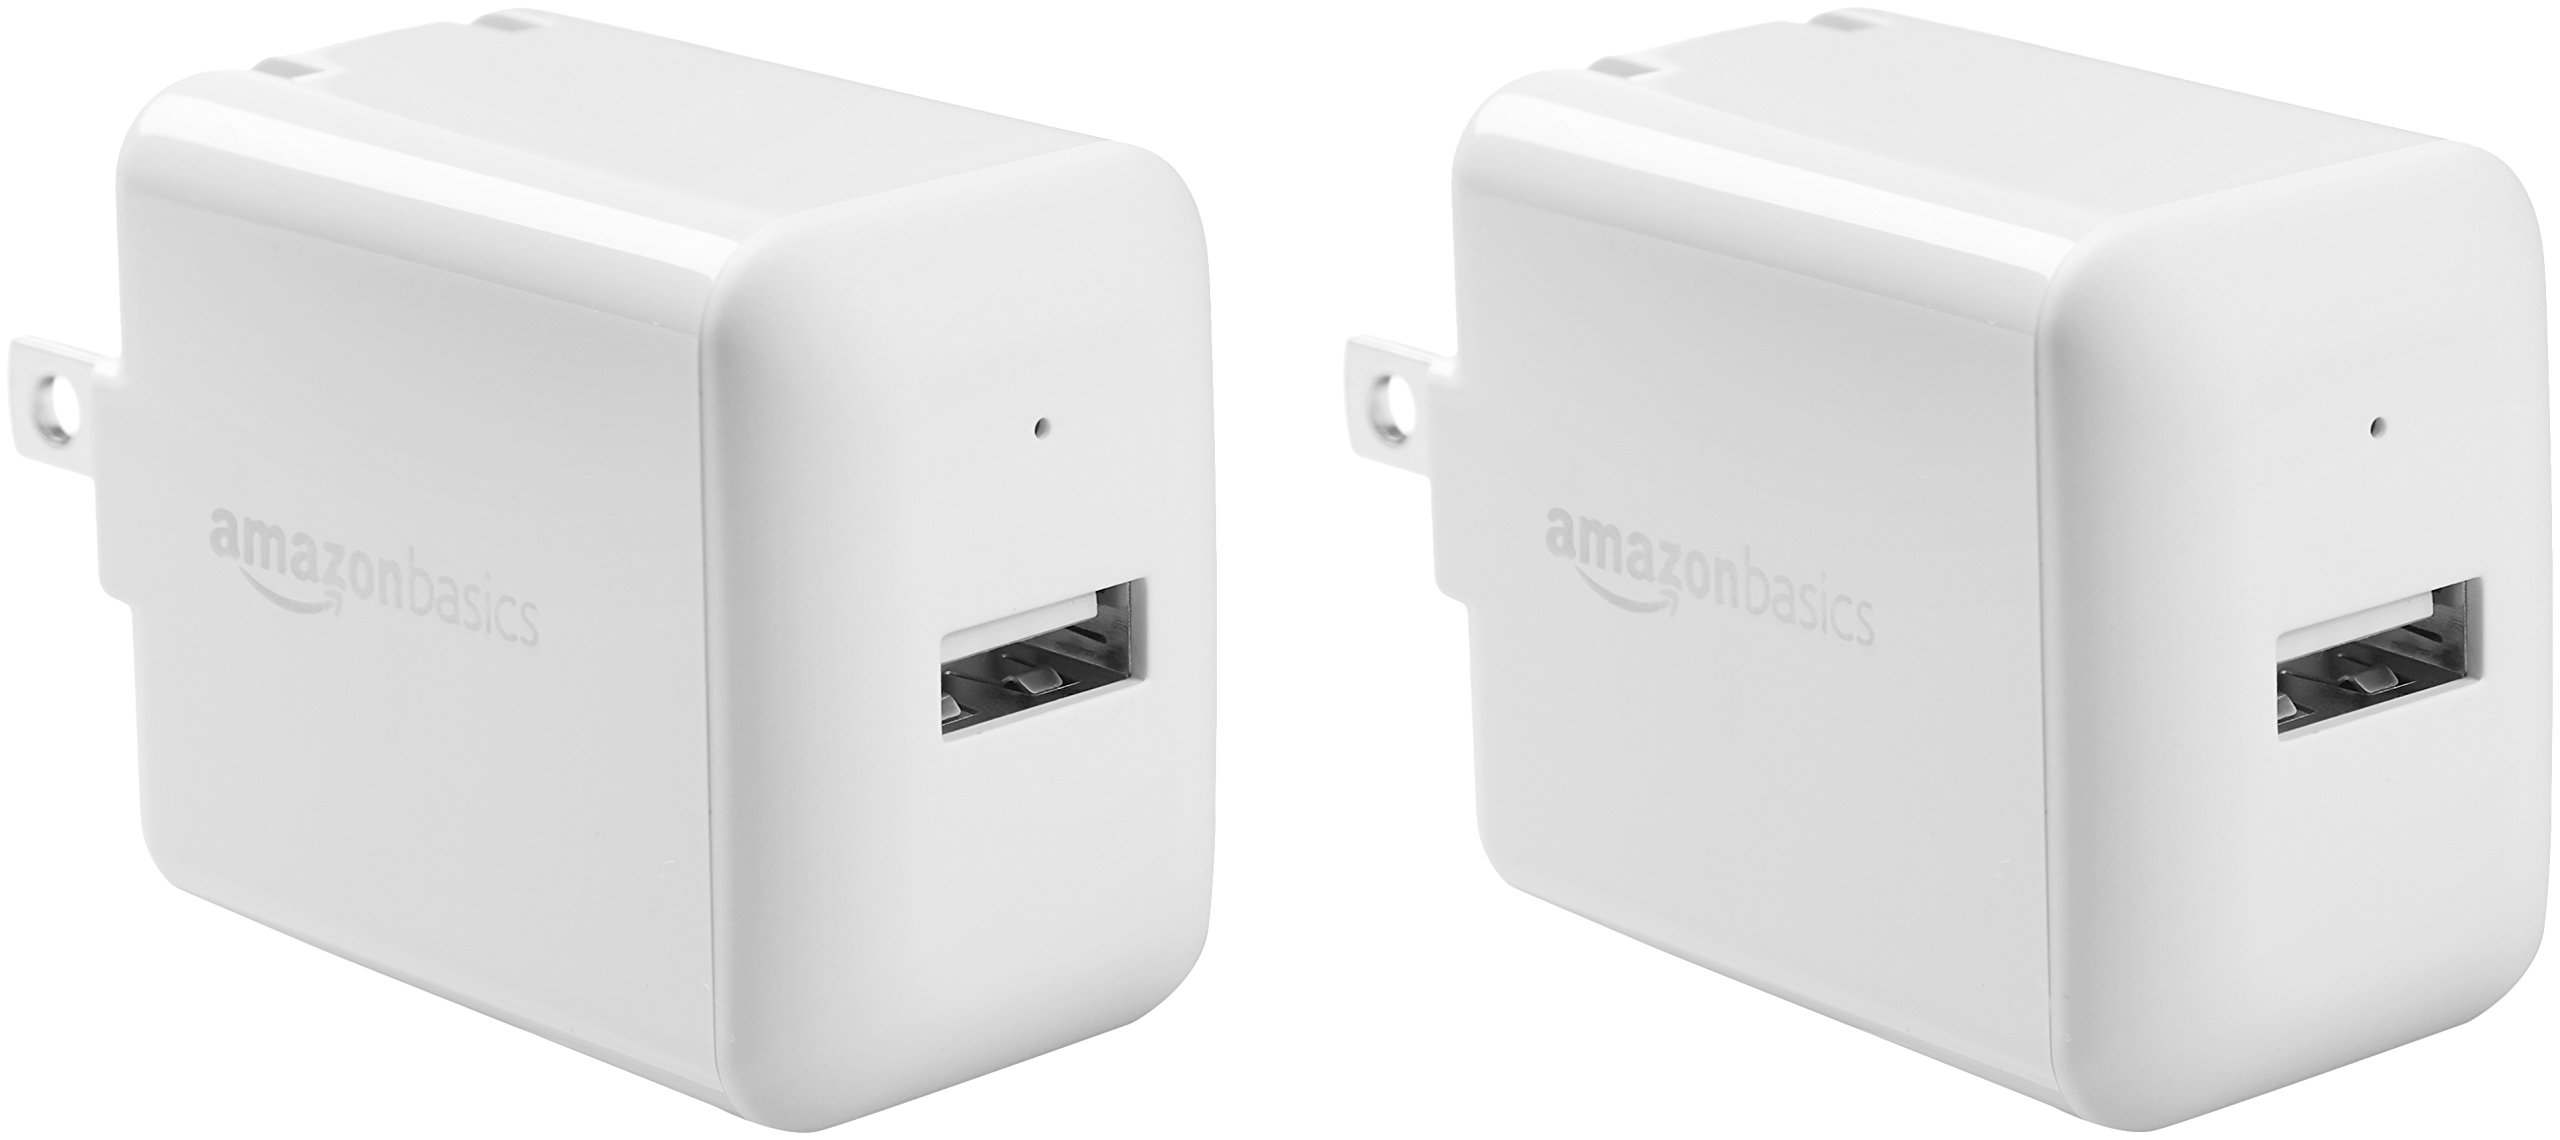 AmazonBasics One-Port USB Wall Charger for Phone, iPad, and Tablet, 2.4 Amp, White, 2 Pack by AmazonBasics